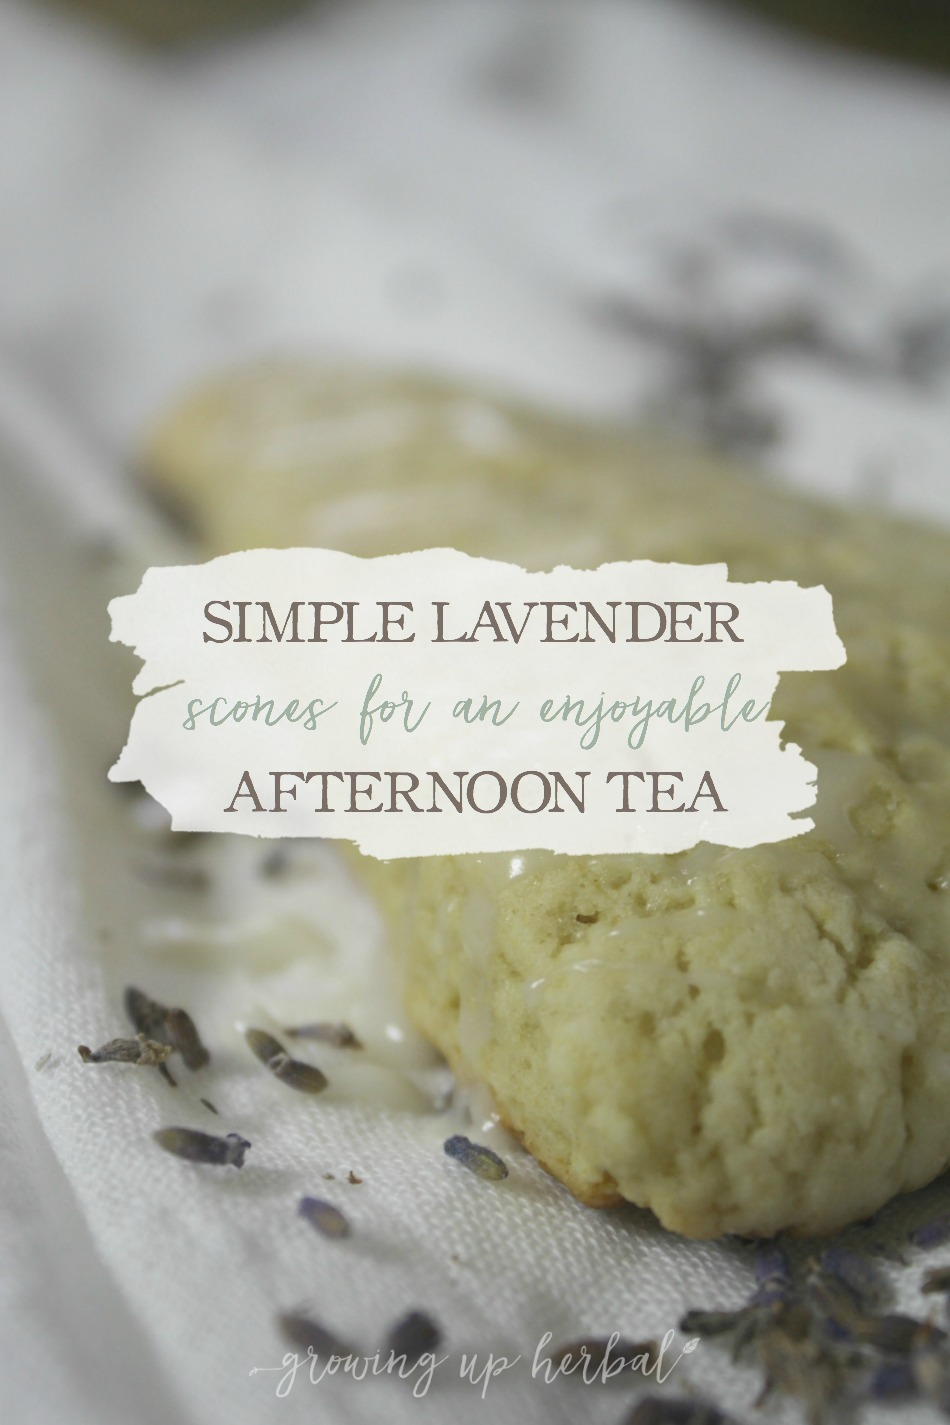 Simple Lavender Scones for an Enjoyable Afternoon Tea | Growing Up Herbal | These tasty lavender scones are easy to make and are a perfect treat for afternoon tea!